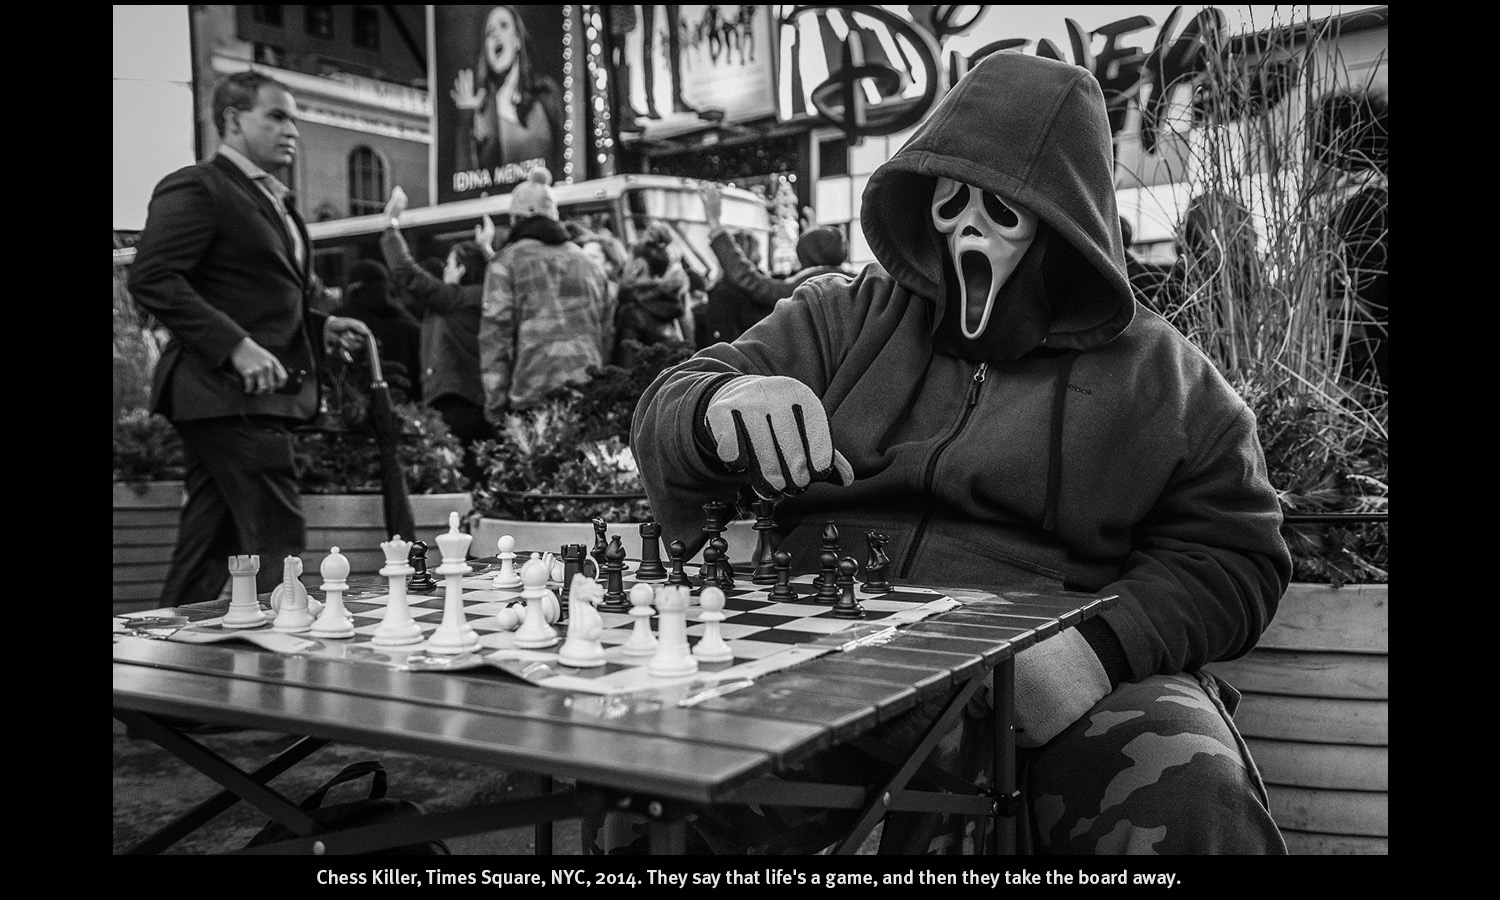 Chess-Killer-Times-Square-NYC-2014-Bautista